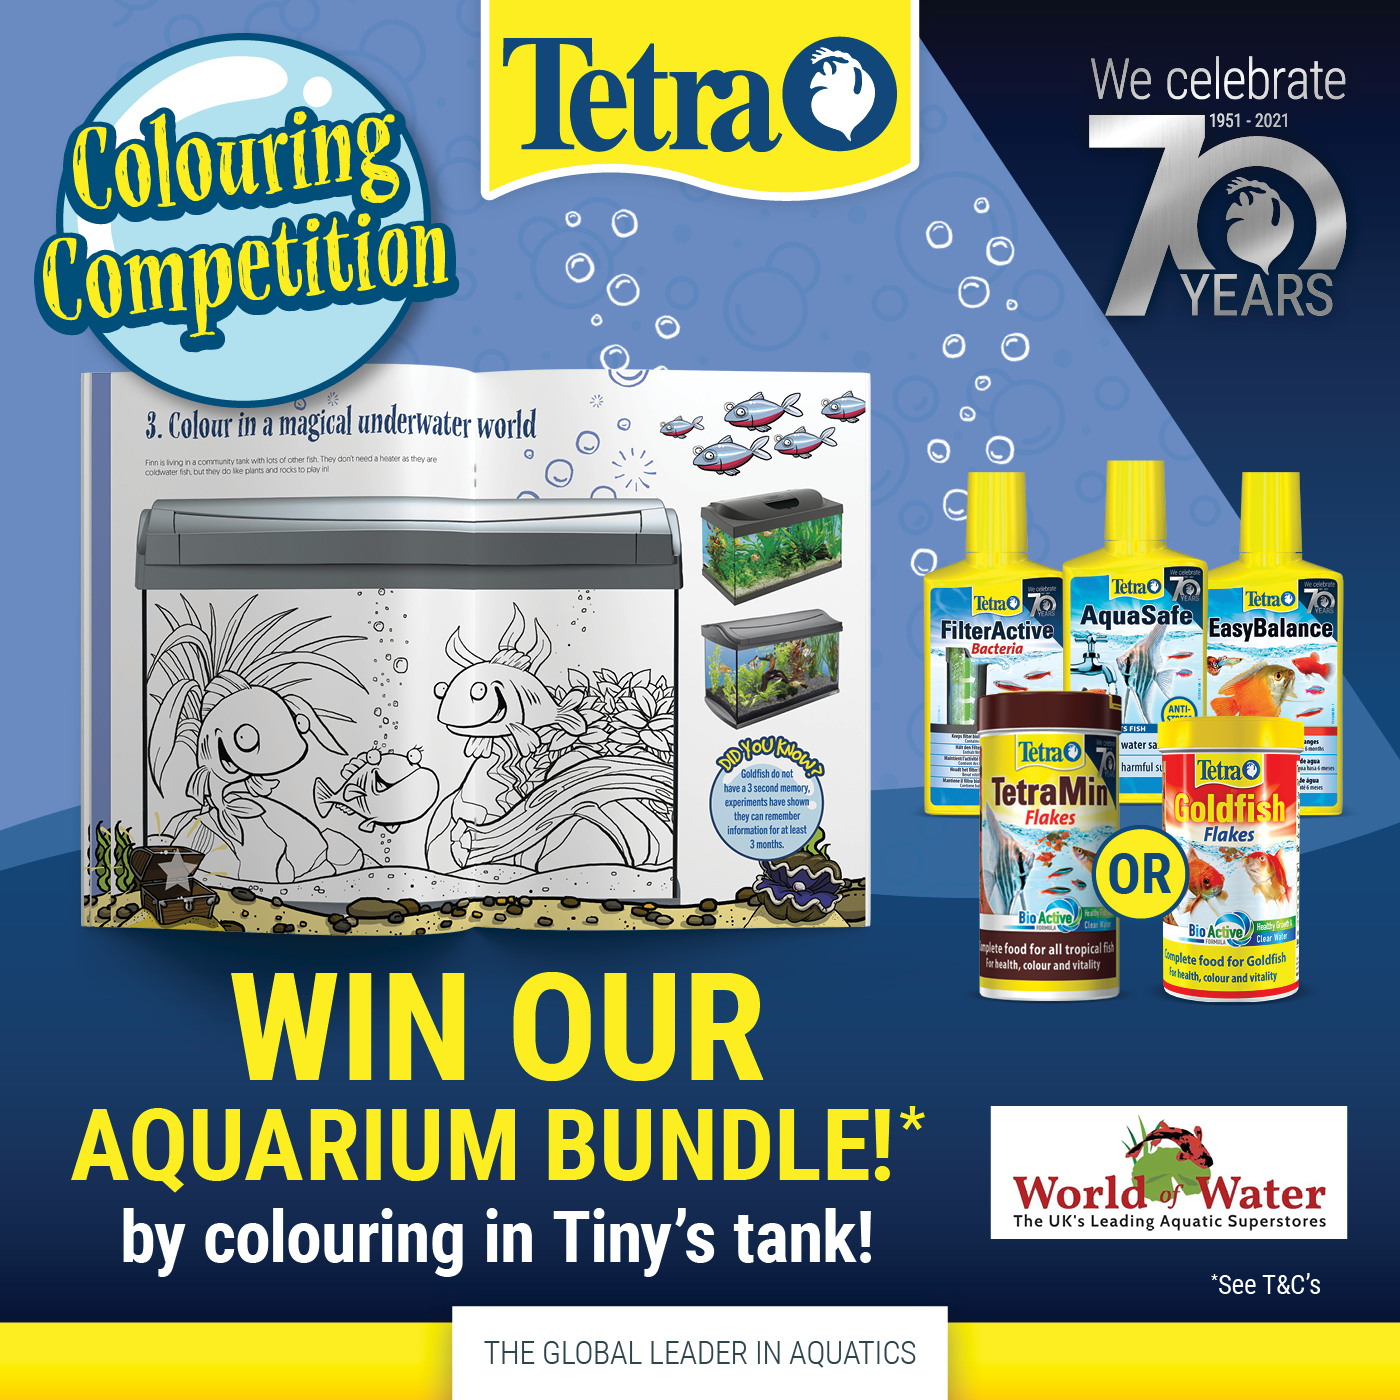 Tetra's Colouring Competition